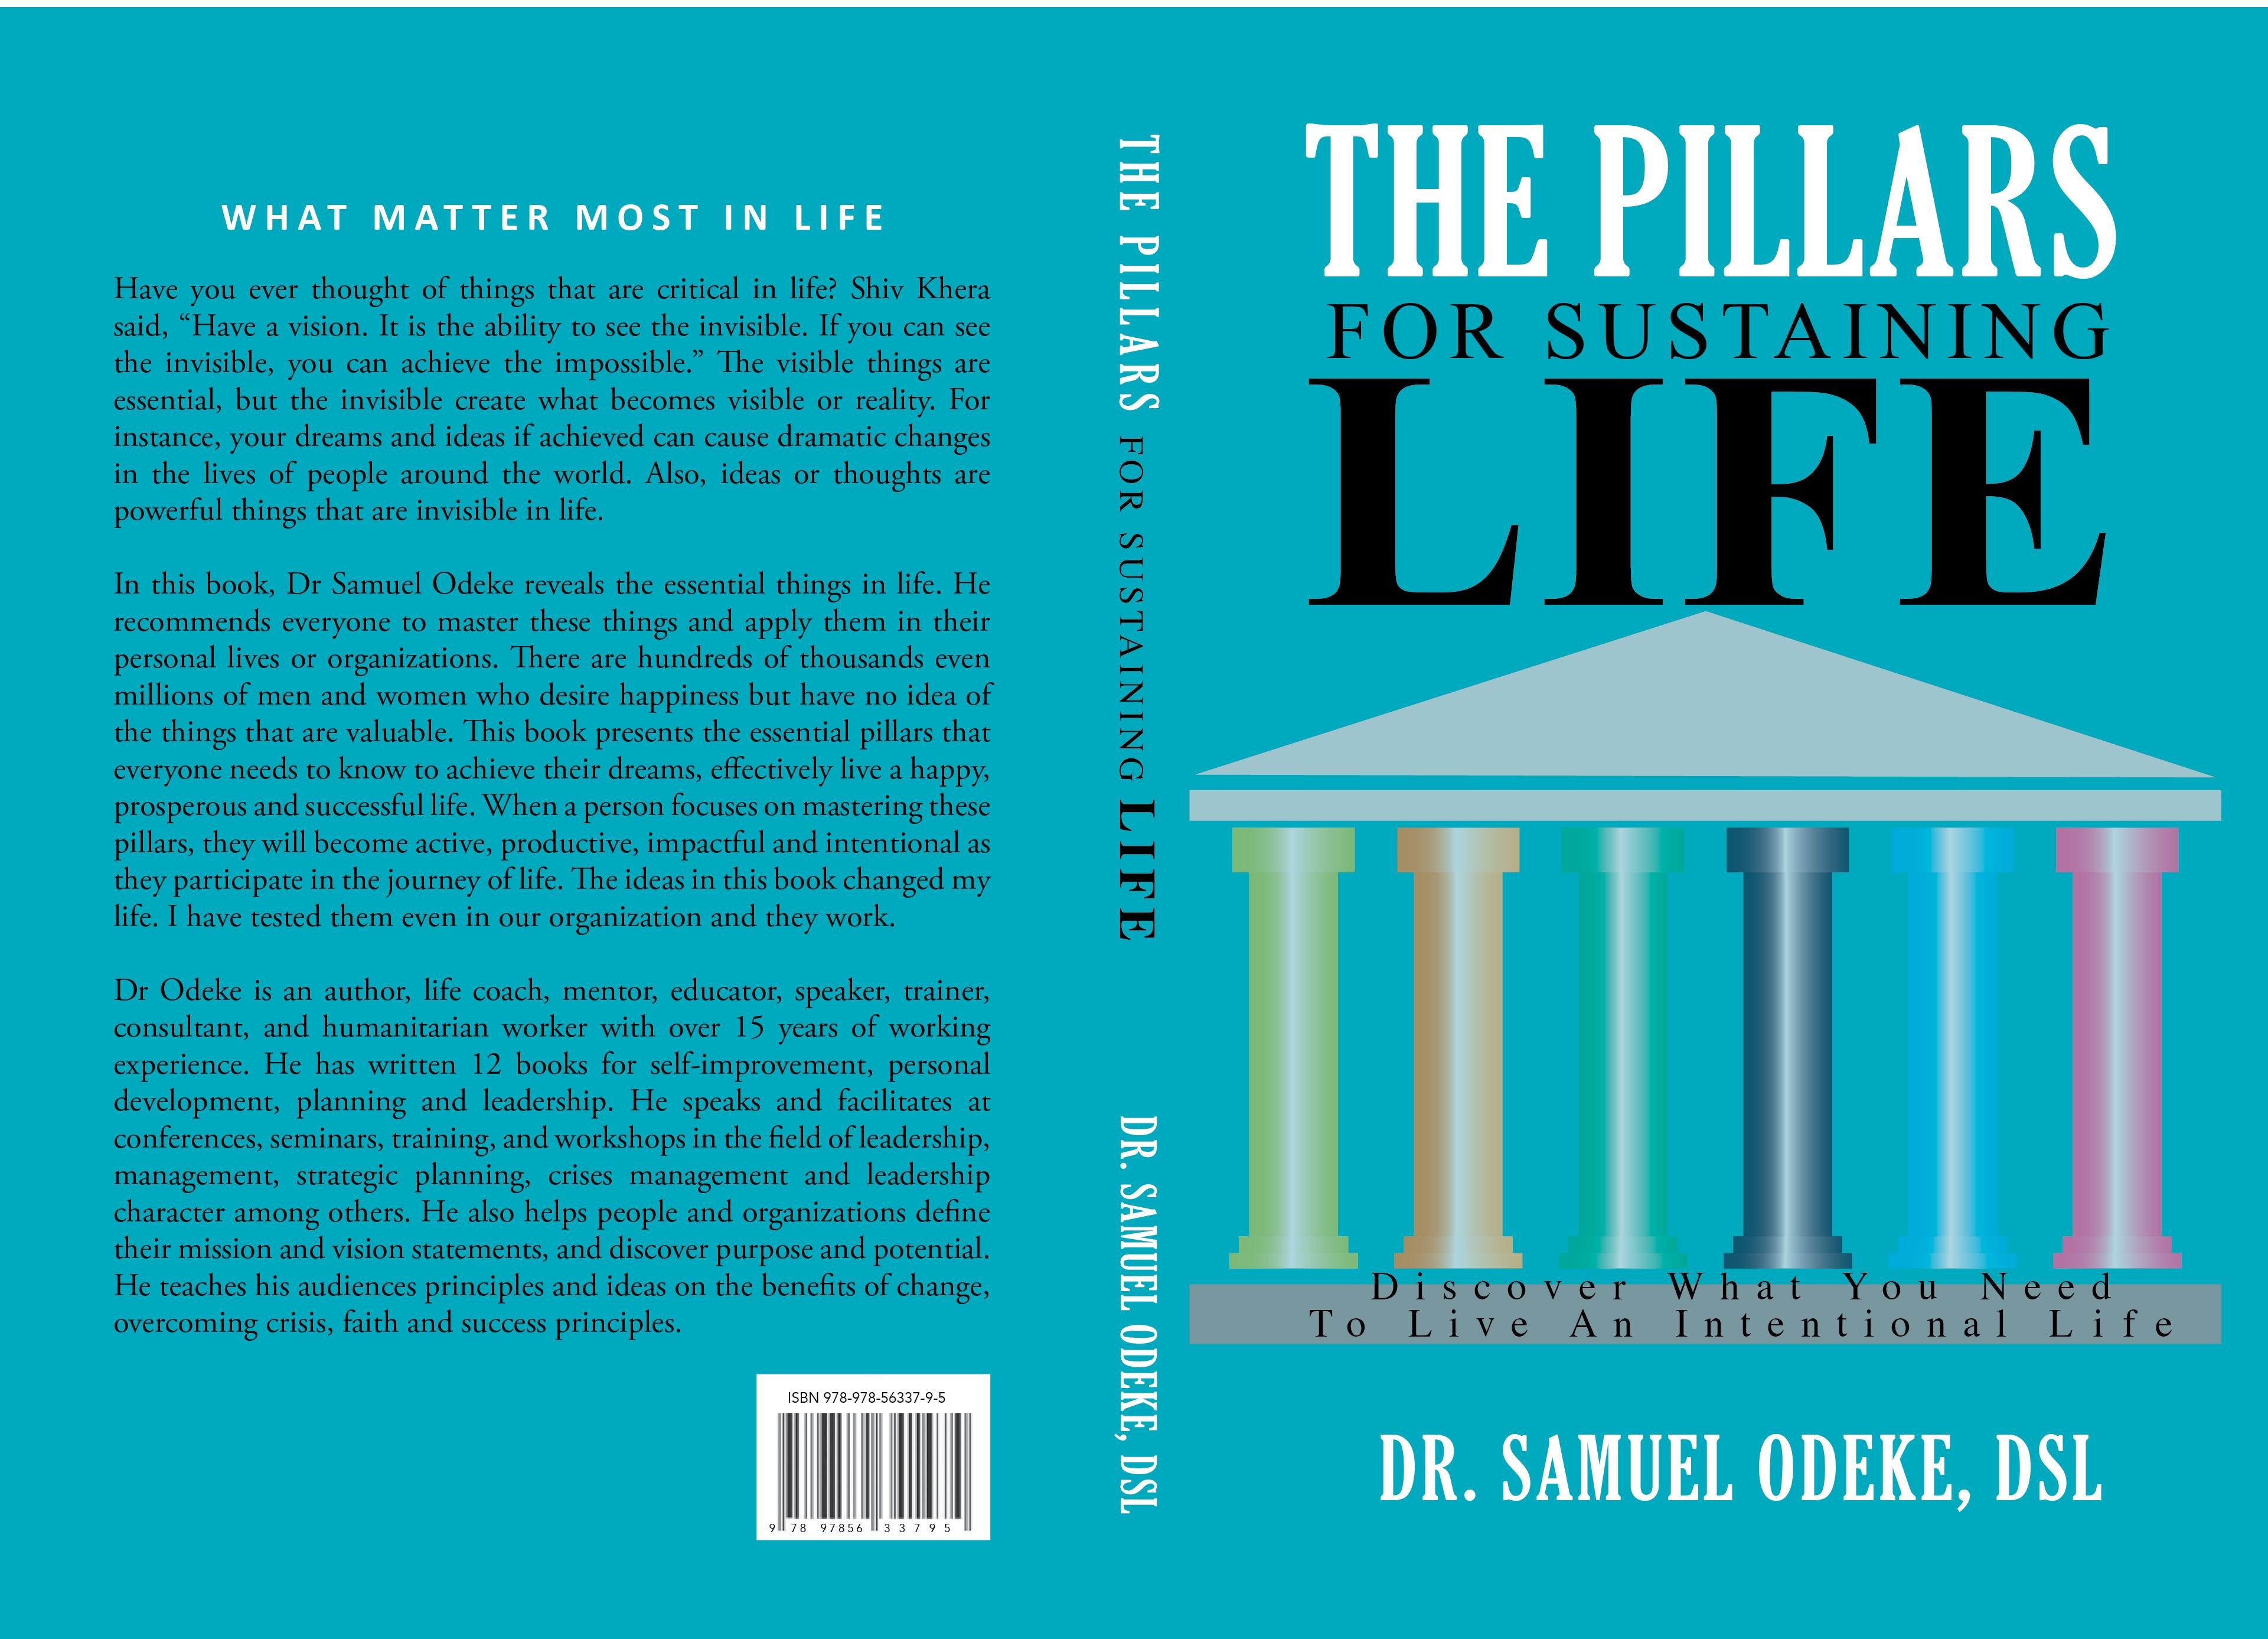 The Pillars for Sustaining Life: Discover What You Need to Live an Intentional Life cover image